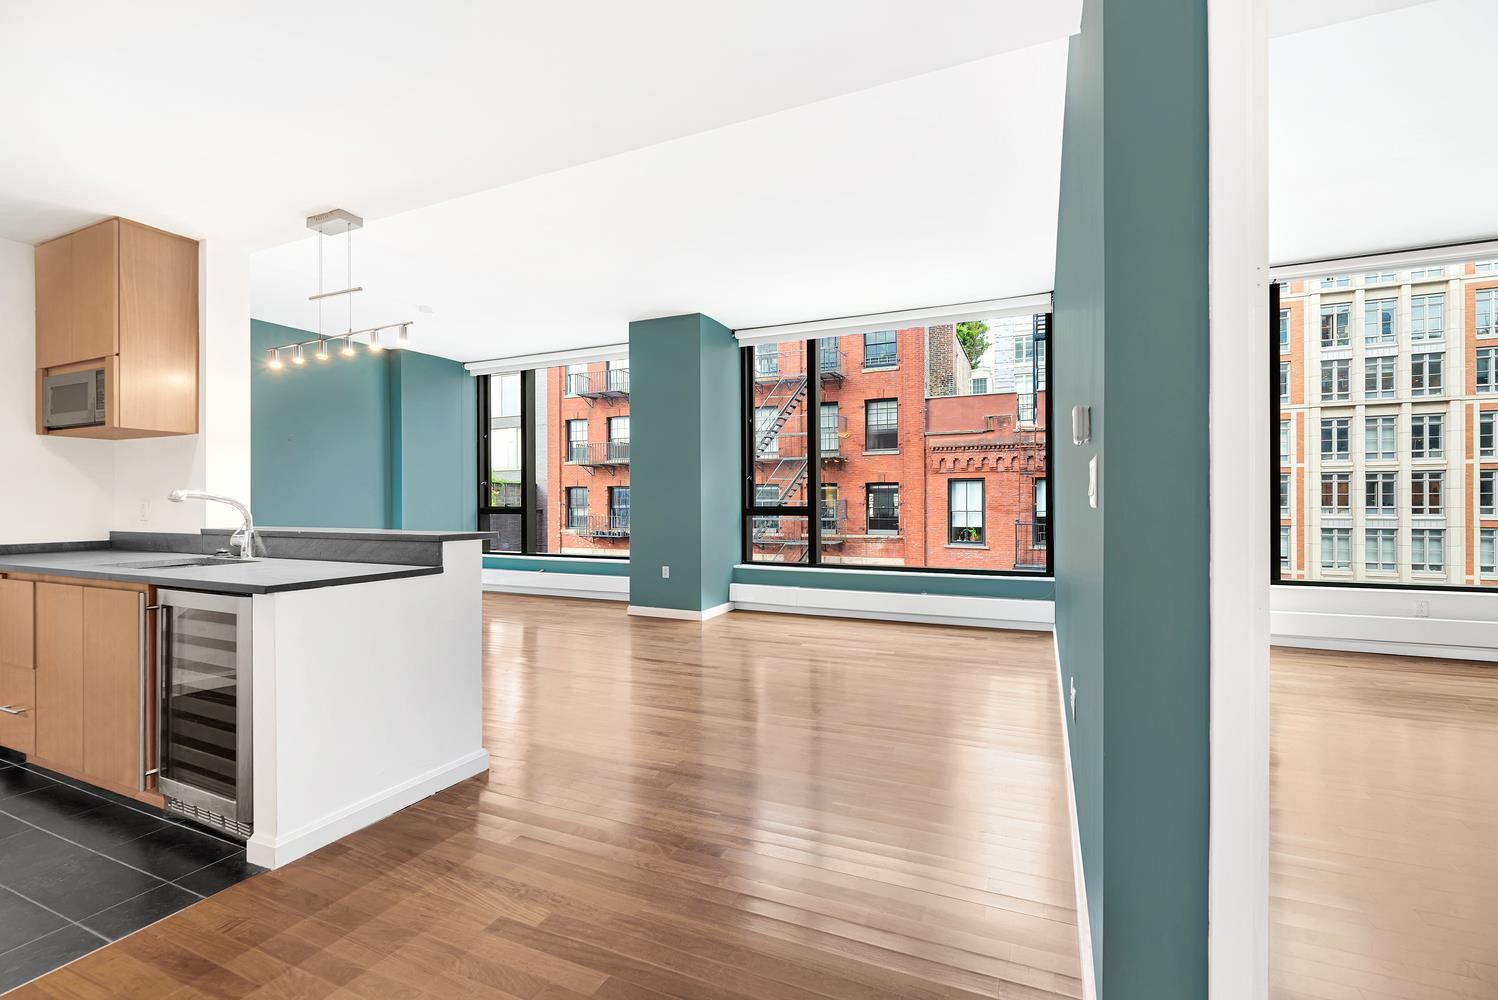 "SOHO condo which easily converts to 2-bedrooms! 9'6"" ceilings, huge windows with Eastern exposure in premiere luxury building!This serene apartment has central A/C, and Washer/ Dryer in the unit and a Video/ Intercom messaging system.Additionally, there are beautiful hardwood floors, exceptional closet space, open kitchen with Fisher Paykel range, Bosch dishwasher, Sub-Zero fridge, wine fridge and garbage disposal. The marble bath has a deep, oversized soaking tub.505 Greenwich Street features a 24-hour doorman/ concierge, fitness center, pet spa, zen-meditation garden, children's playroom, bike storage and private resident storage. Situated between the Hudson River, Tribeca, the West Village and prime SoHo!"